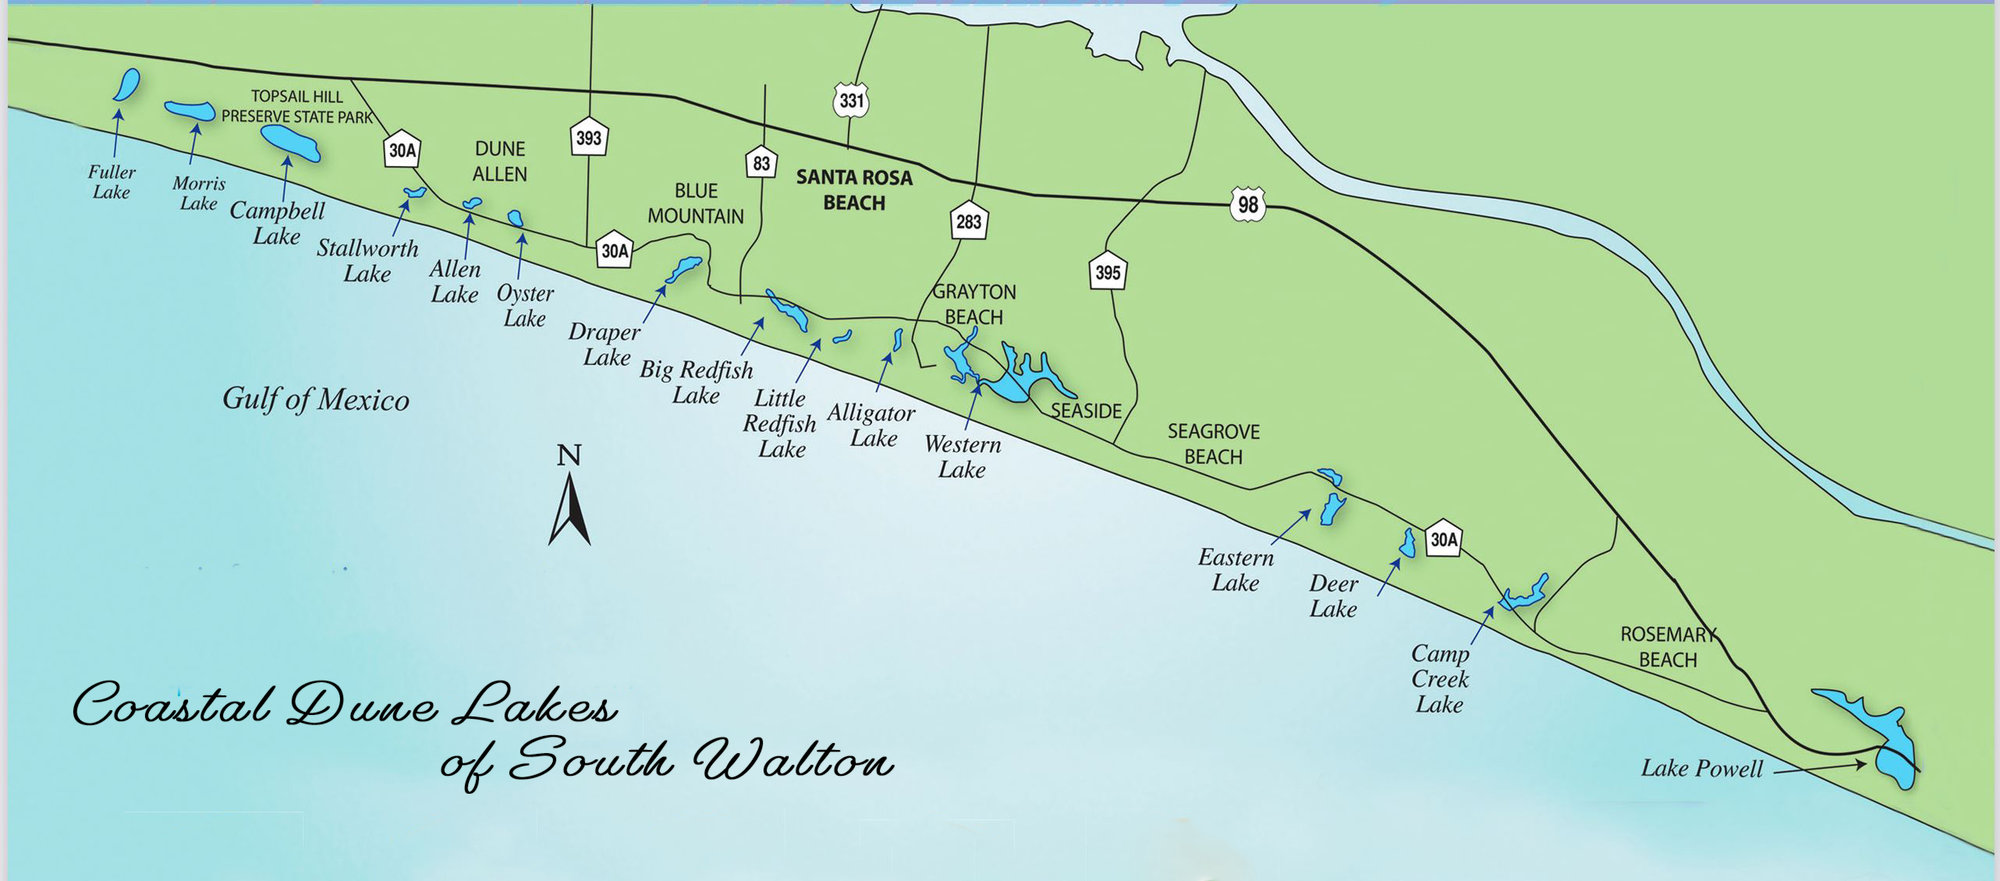 30A Coastal Dune Lake Locator Map